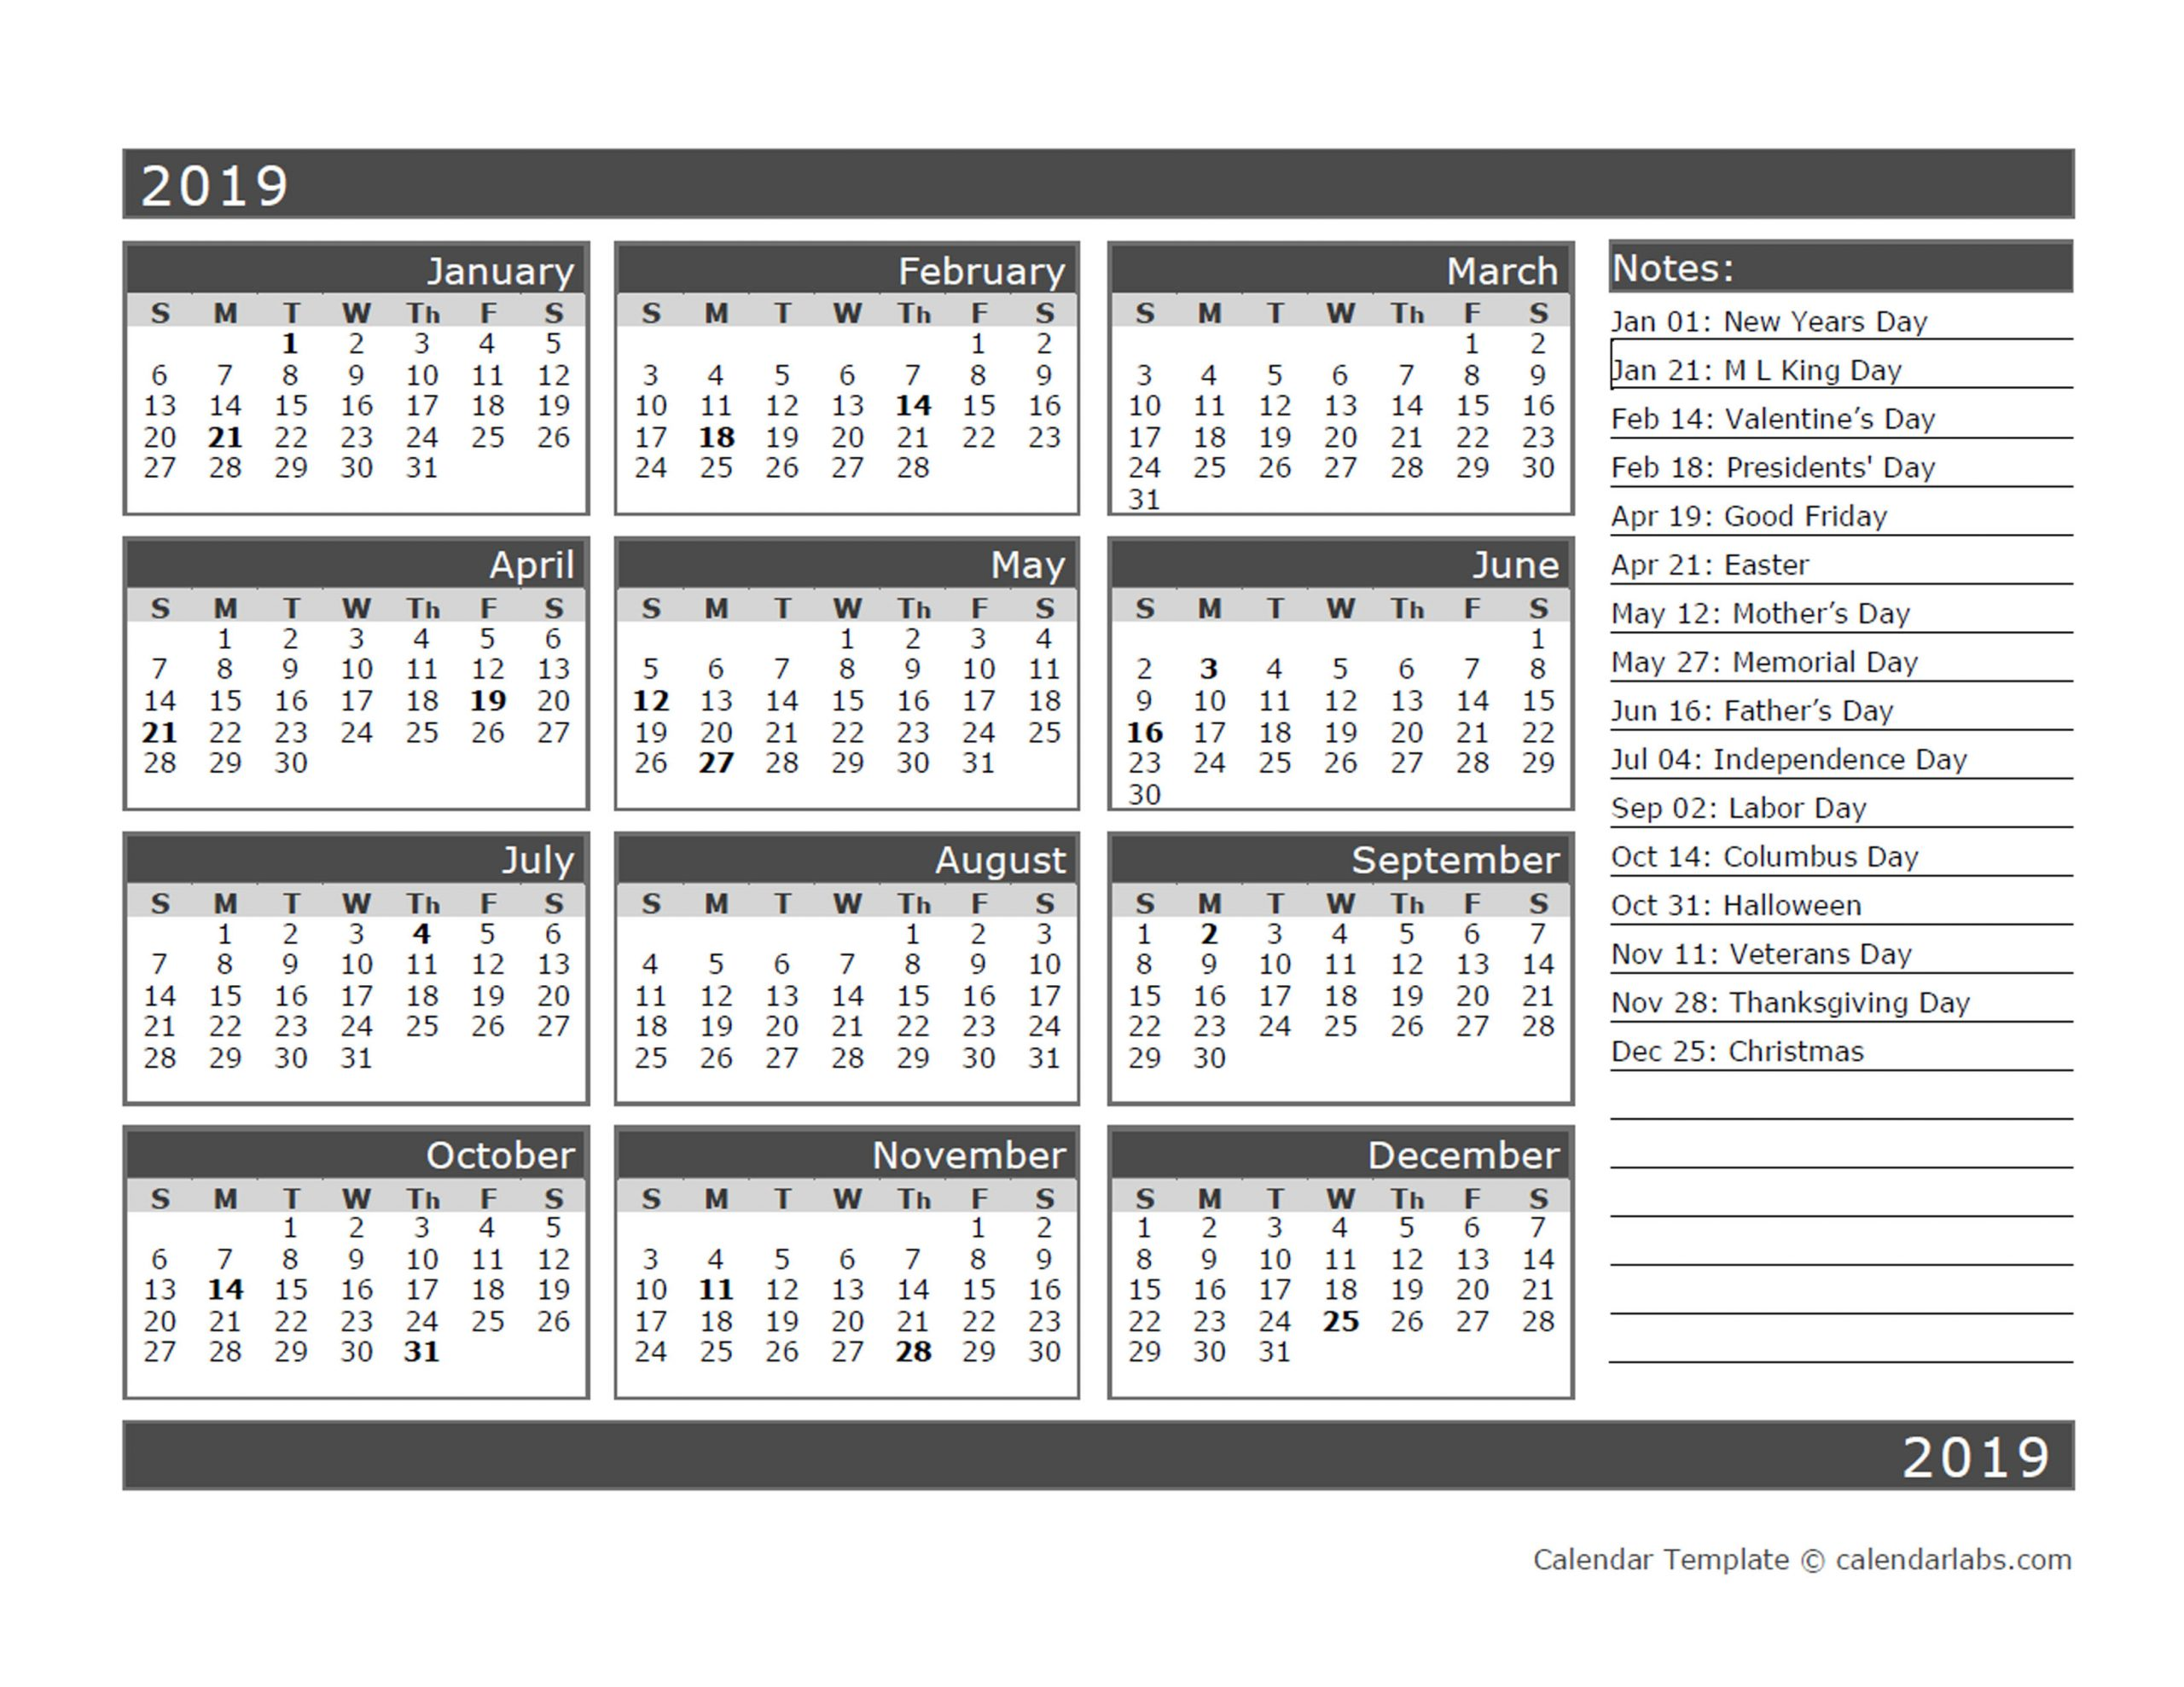 12 Month One Page Calendar Template For 2019 - Free Pertaining To Printable Twelve Month One Page Calendar